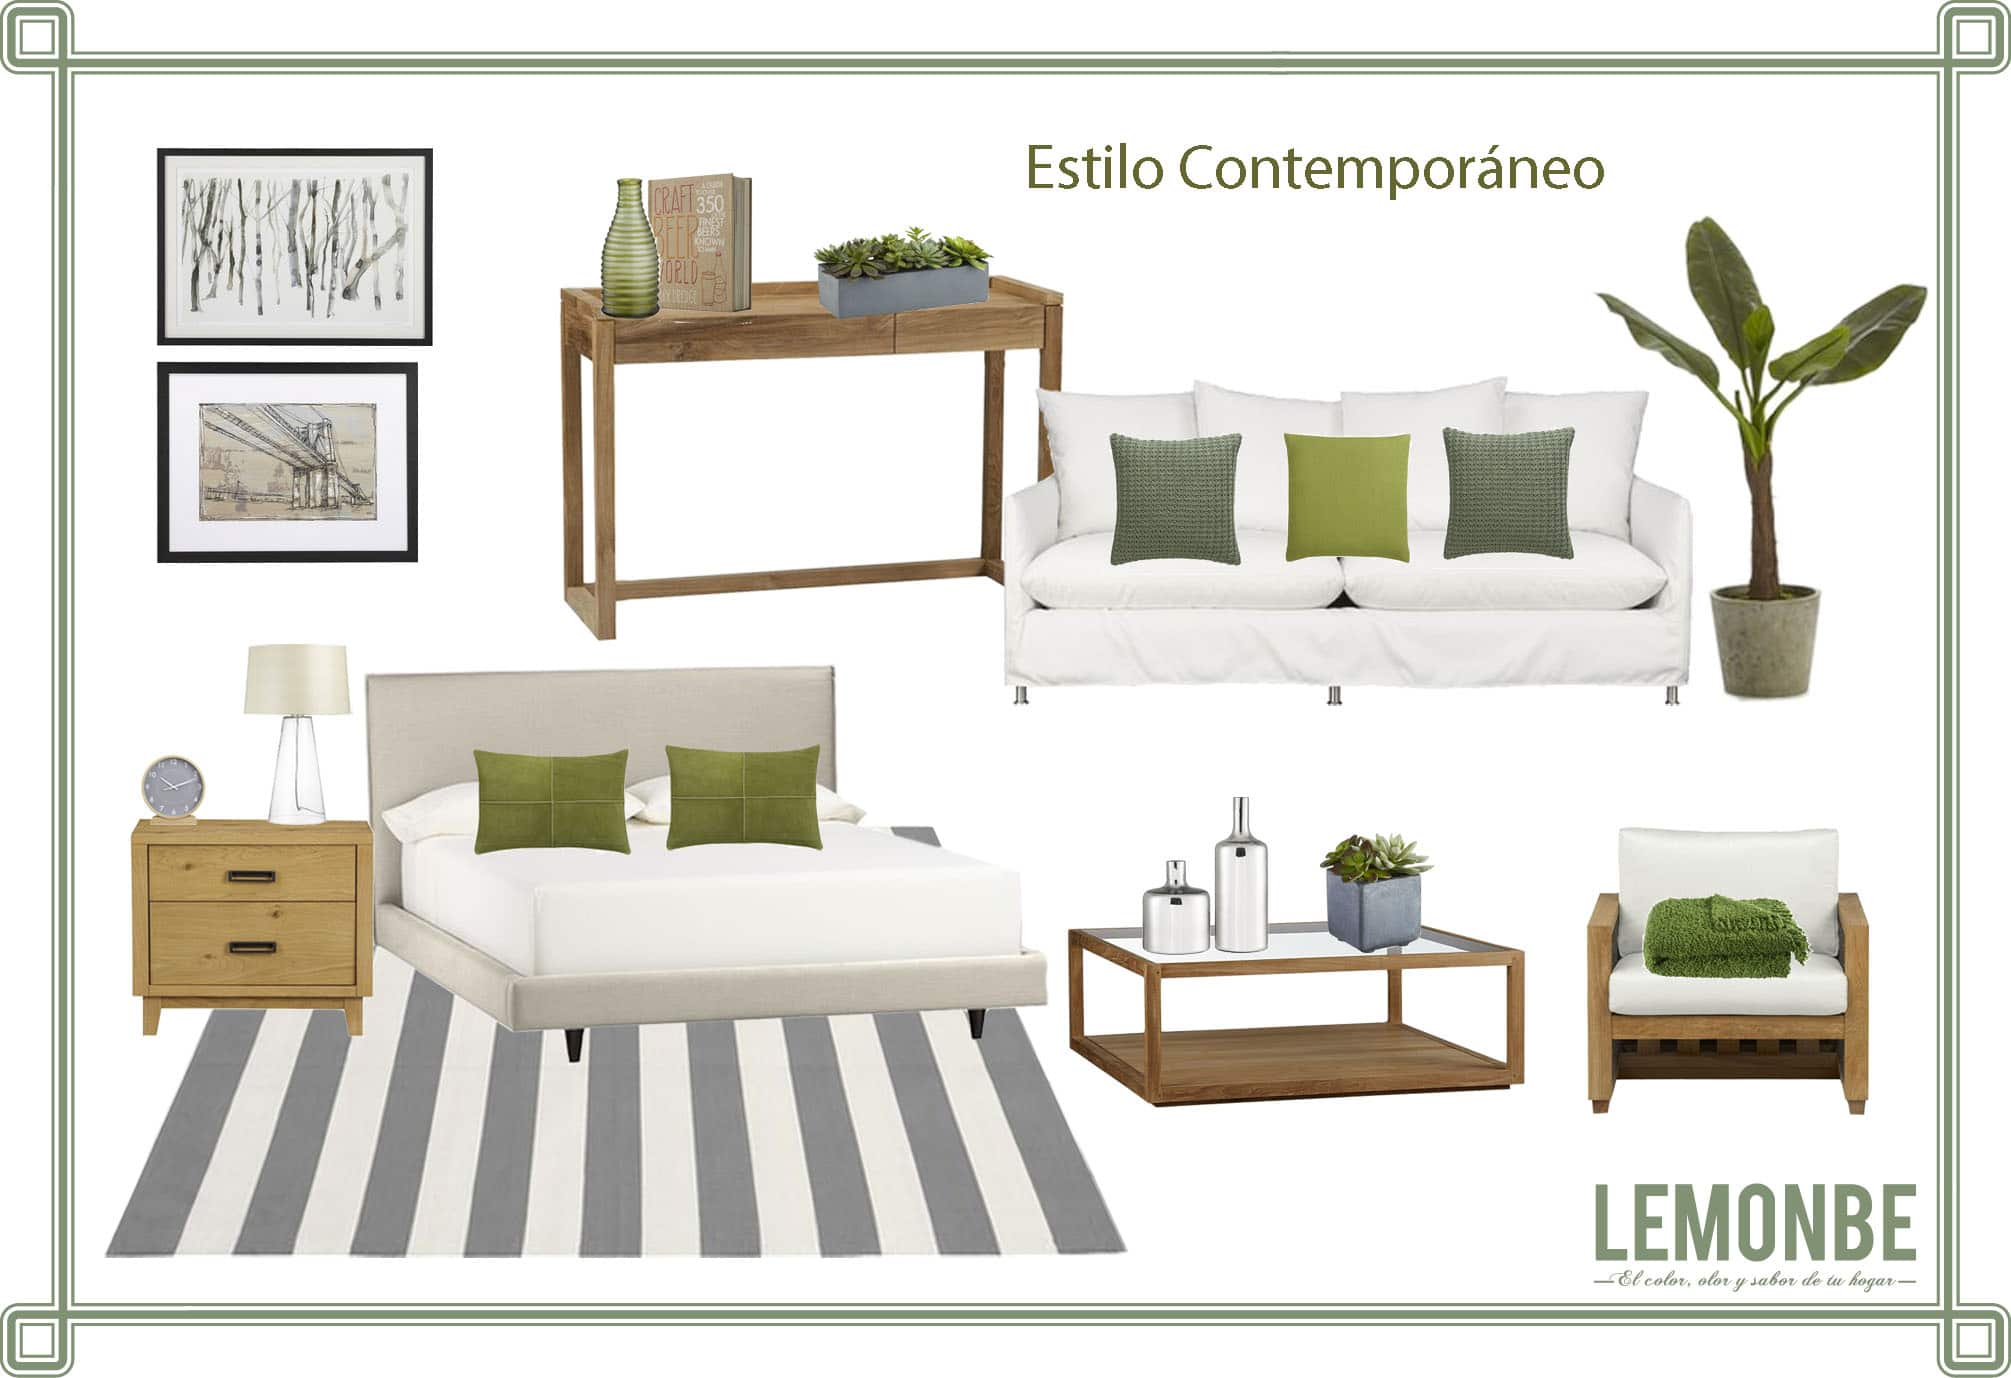 Estilo contemporaneo lemonbe com for Estilo contemporaneo moda